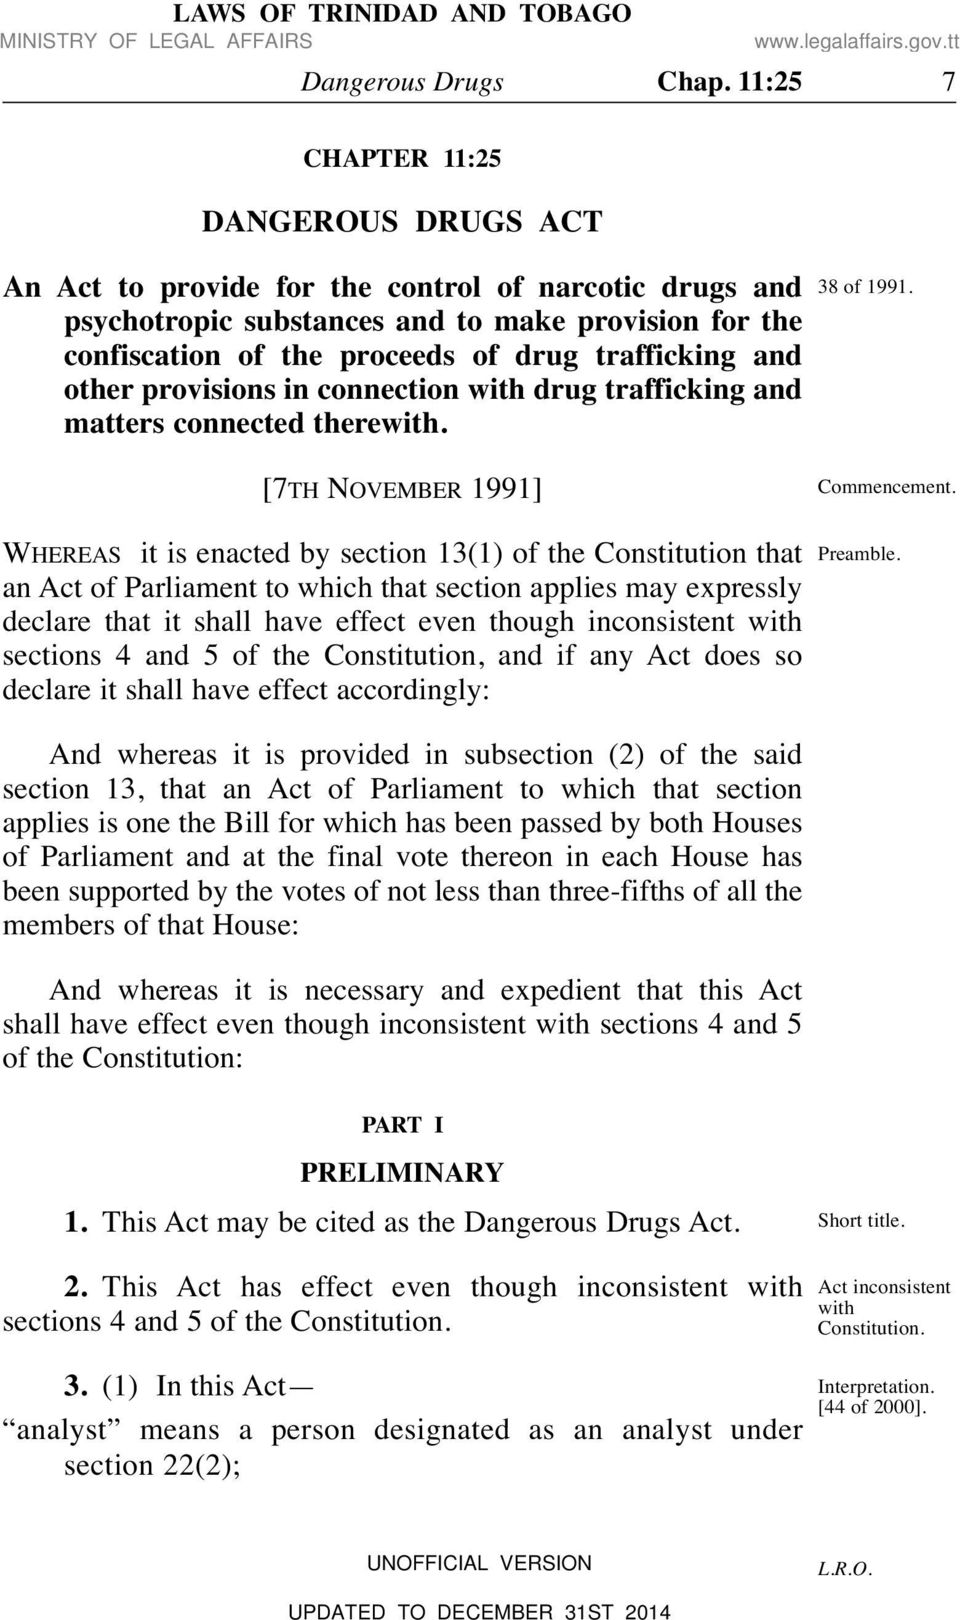 trafficking and other provisions in connection with drug trafficking and matters connected therewith. 38 of 1991. [7TH NOVEMBER 1991] Commencement.